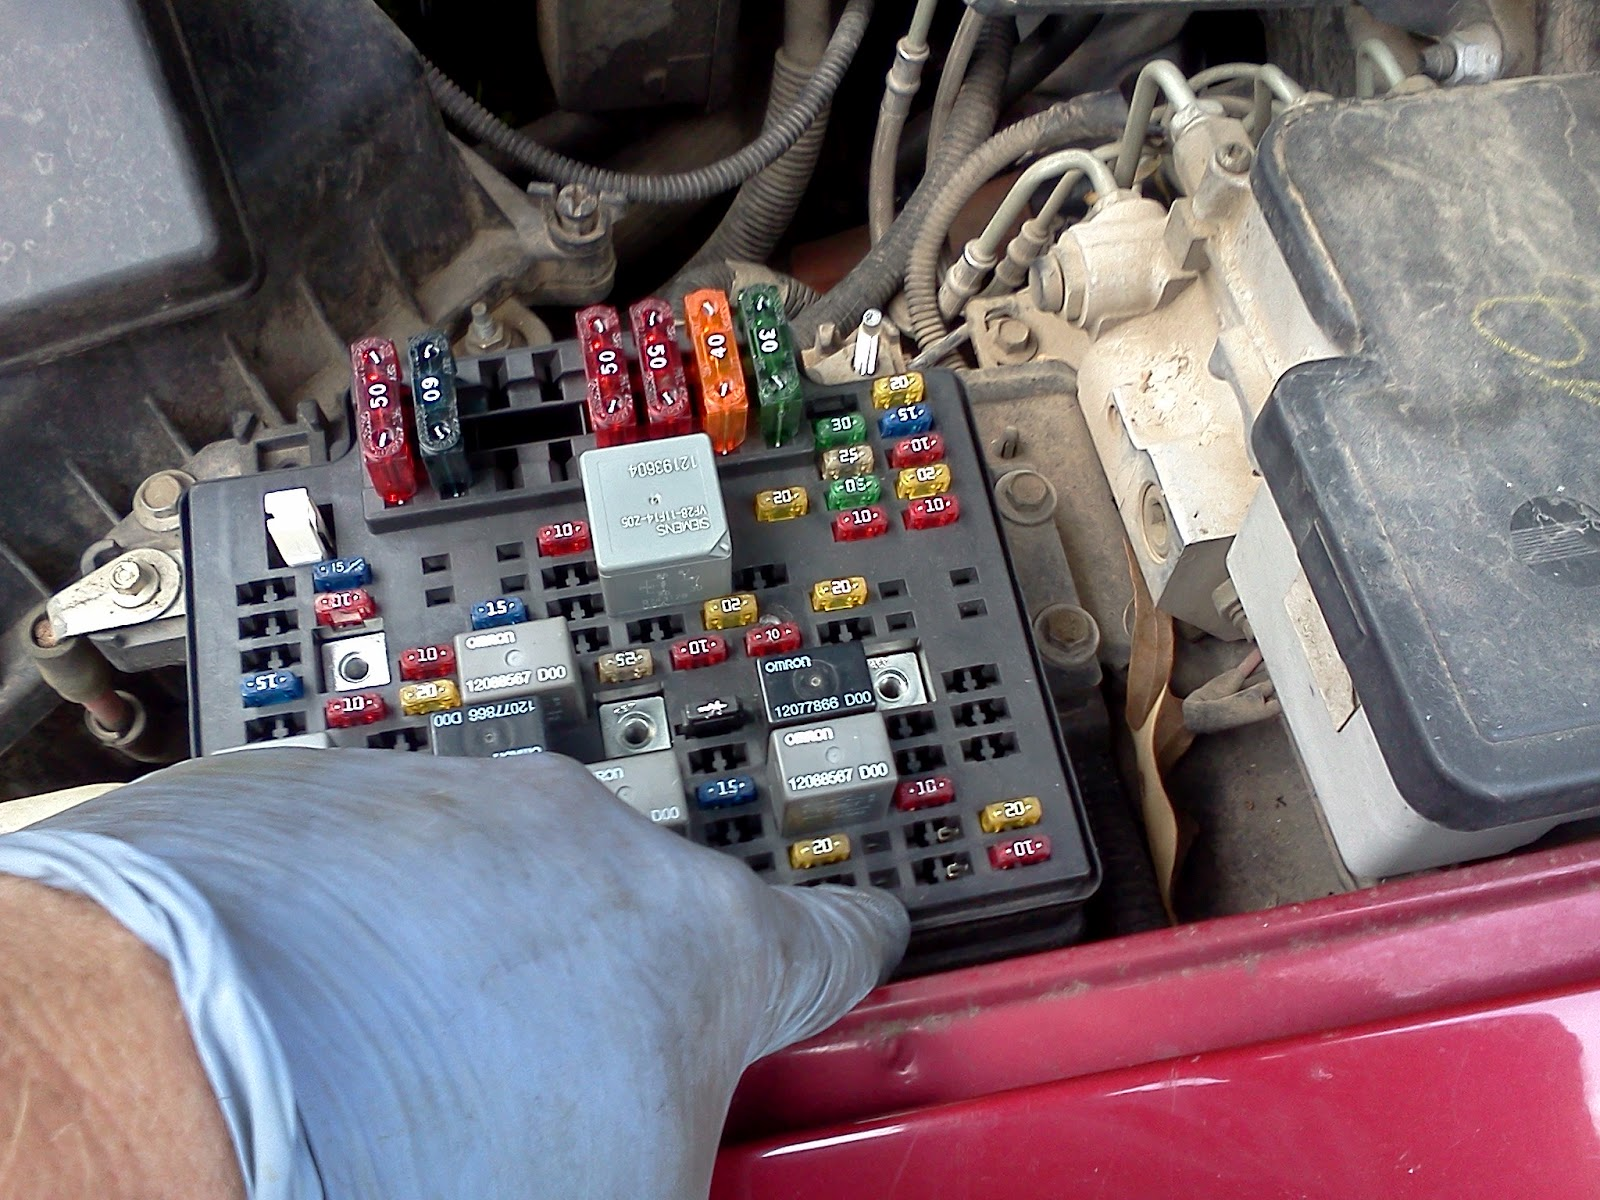 2003 chevy s10 pick up fuse box [ 1600 x 1200 Pixel ]